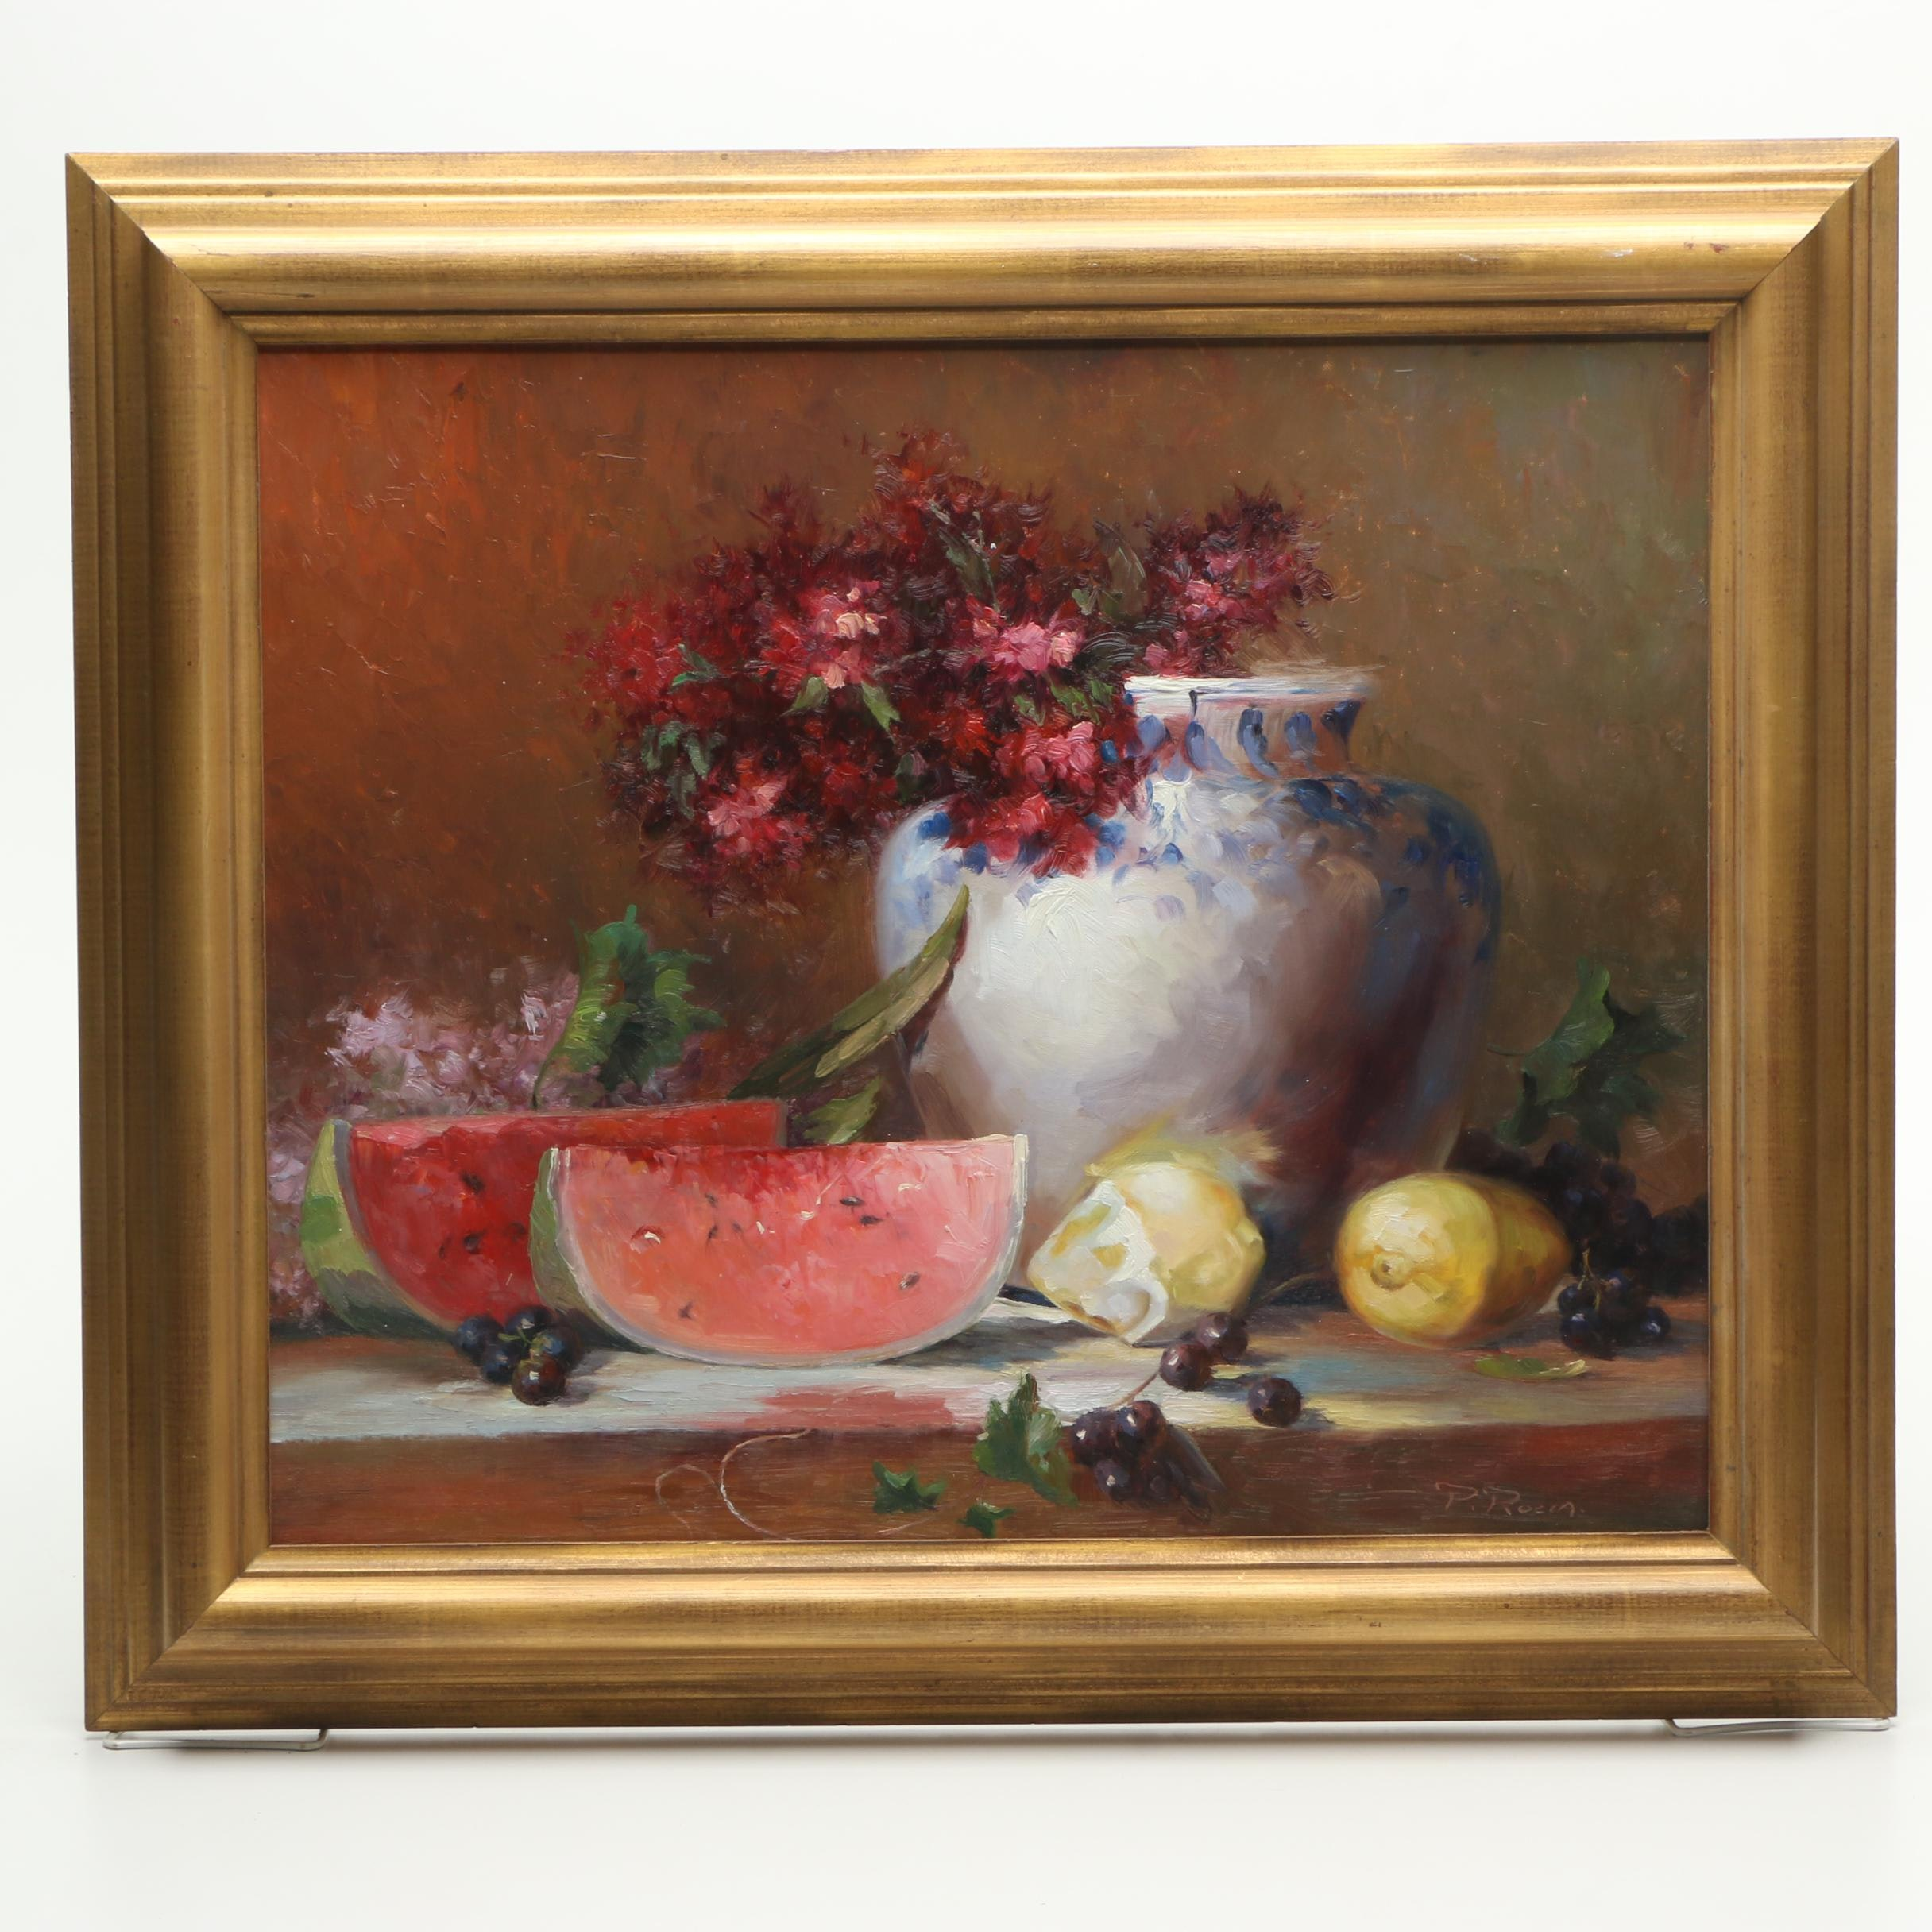 P. Rocca Oil Painting on Canvas of Still Life with Flowers and Fruit